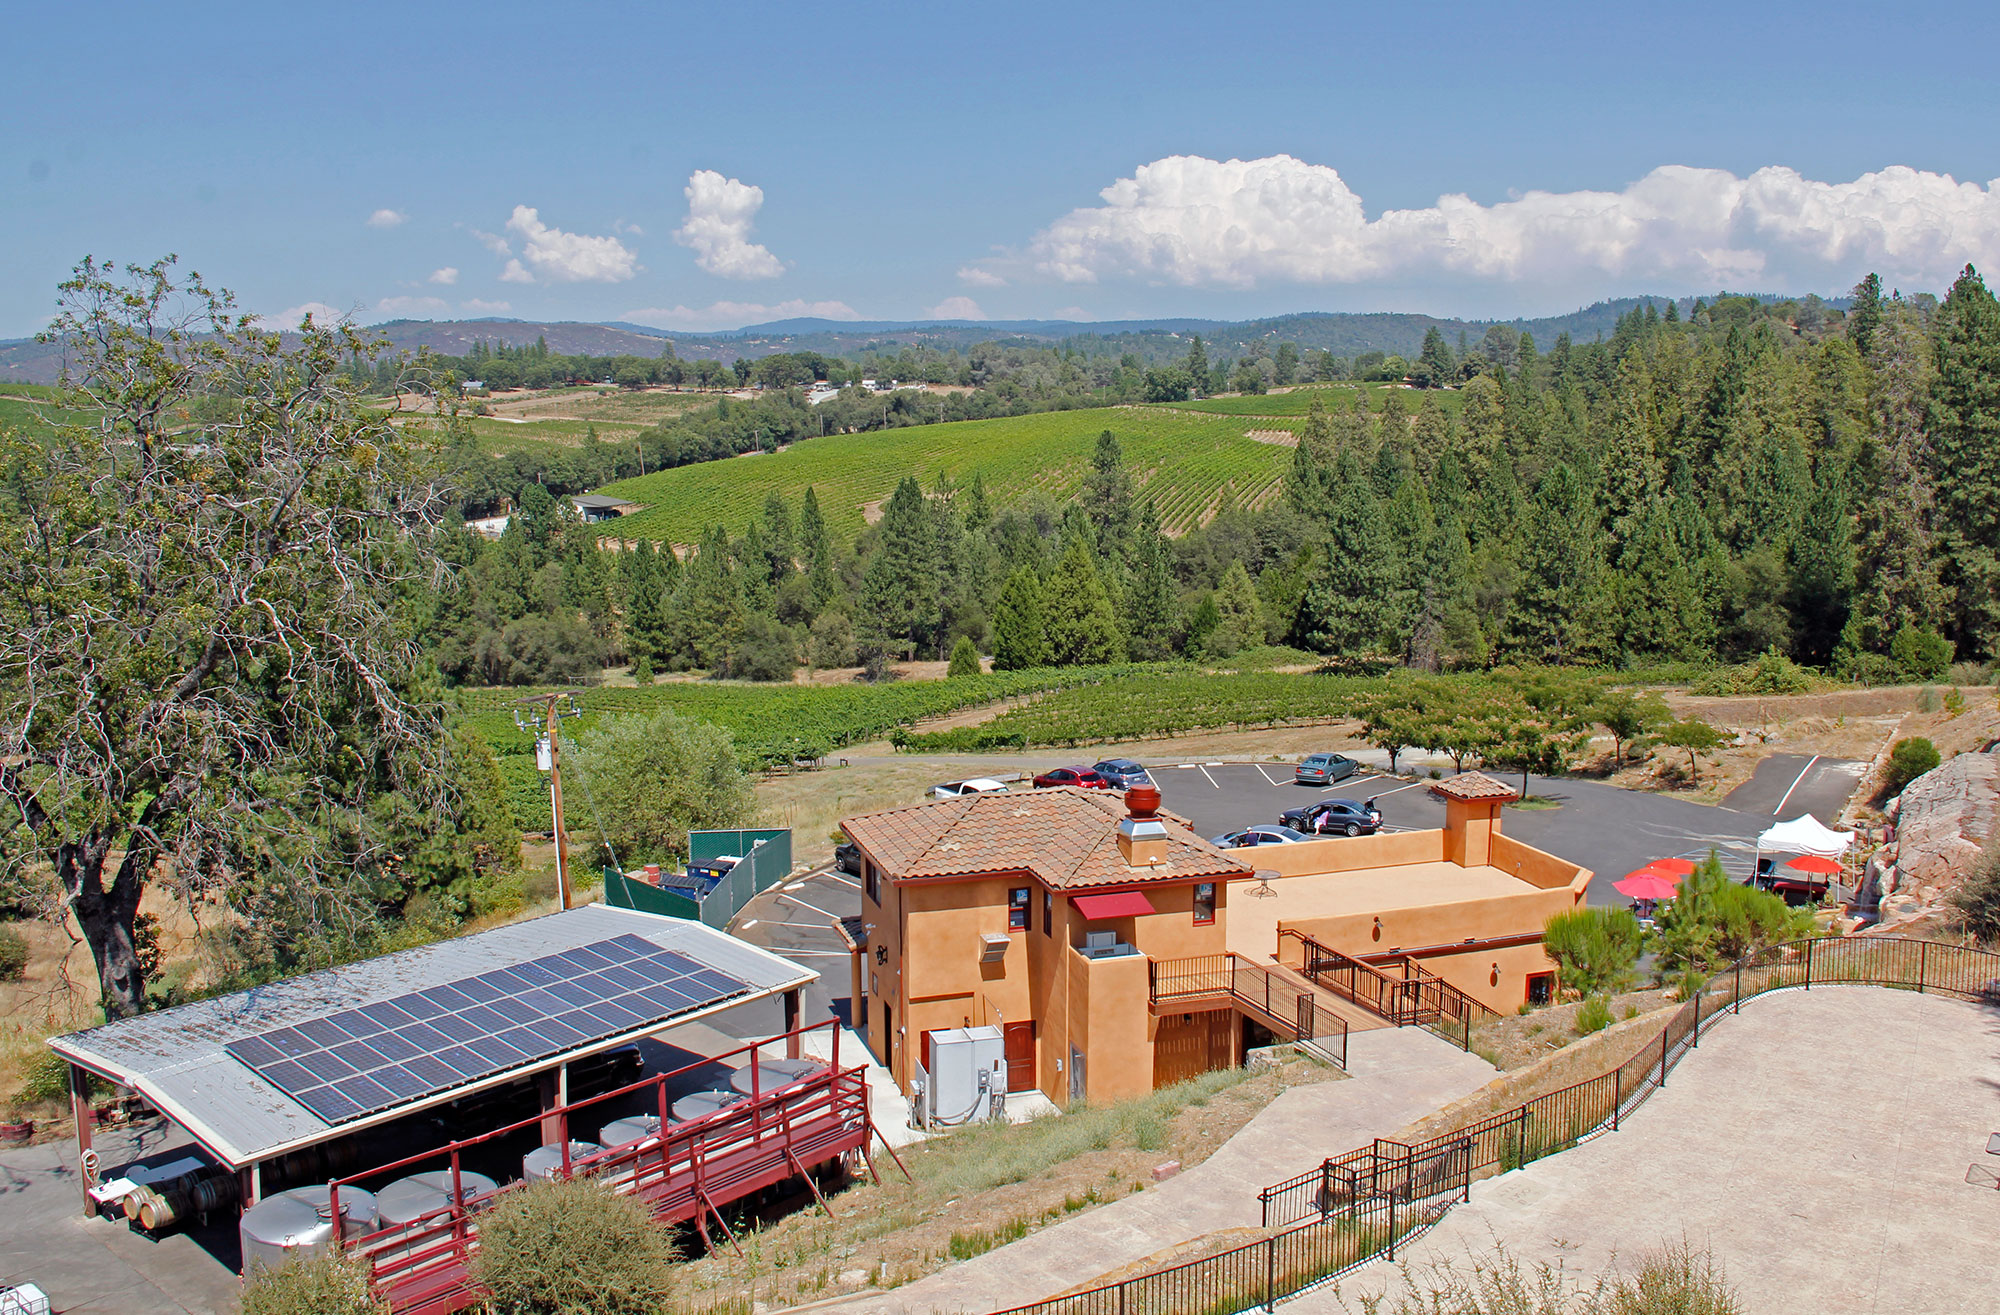 Spectacular Vineyard and Winery Setting in the Sierra Foothiils